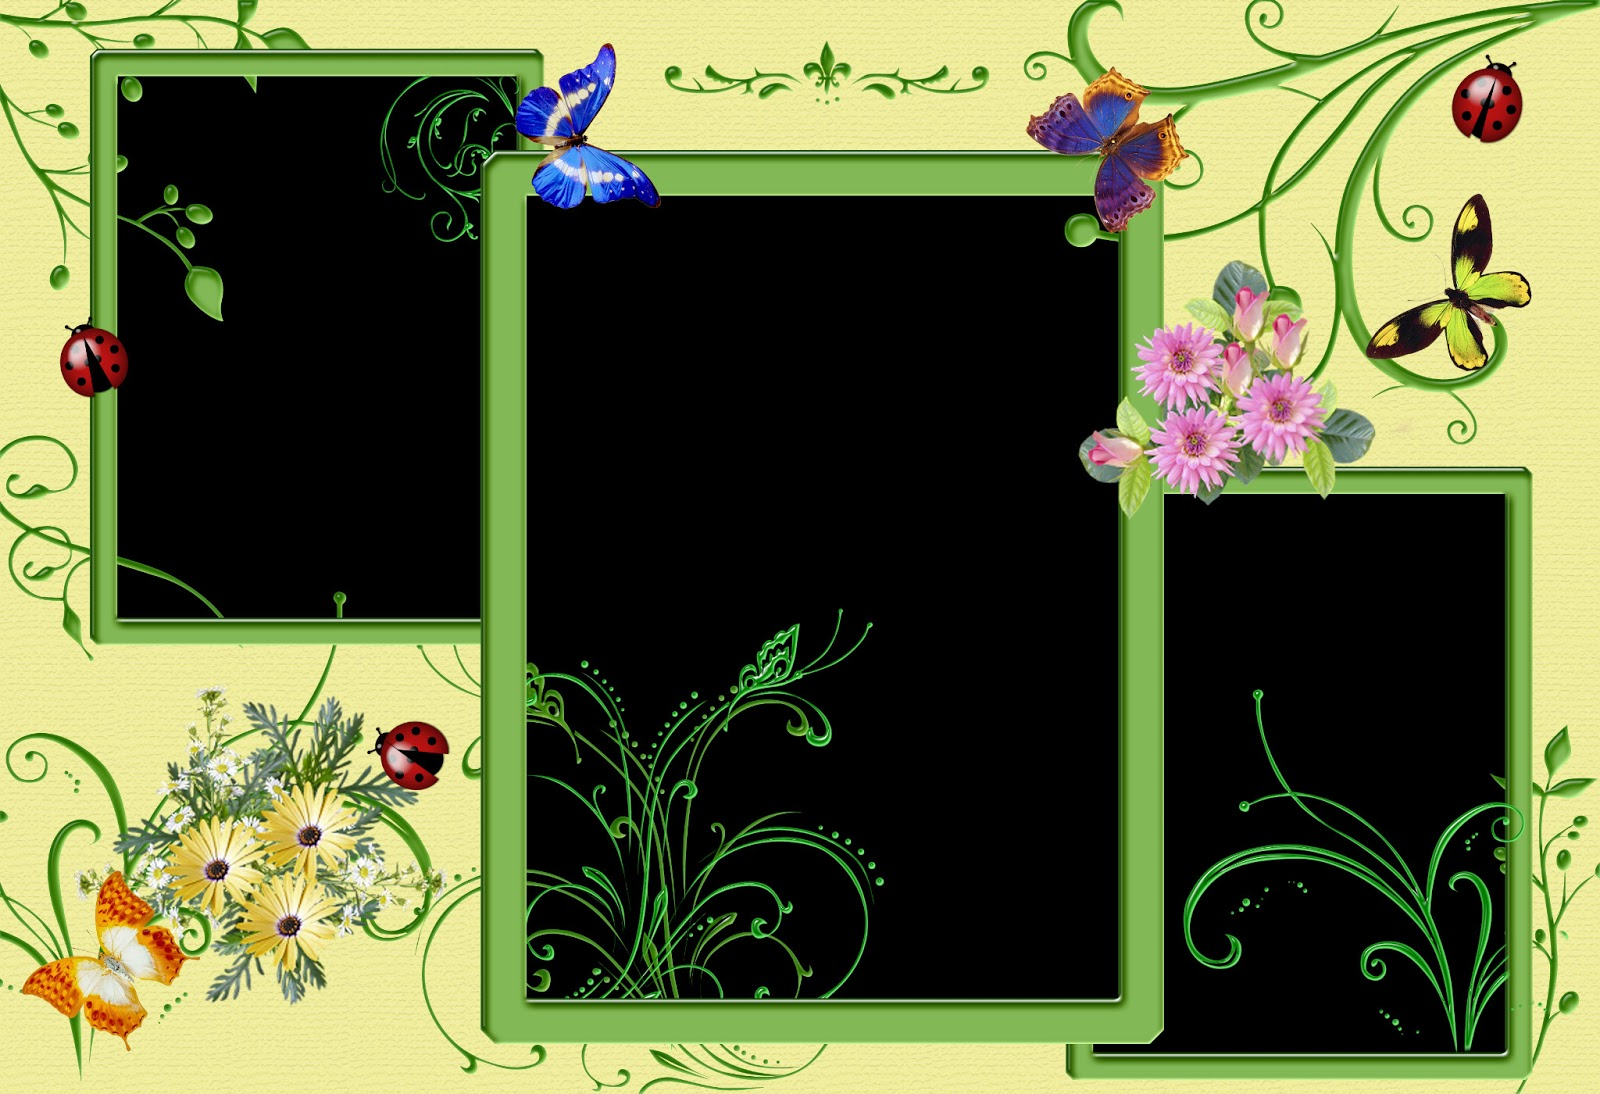 HD Photo Frames Images - Top 10 Wallpapers